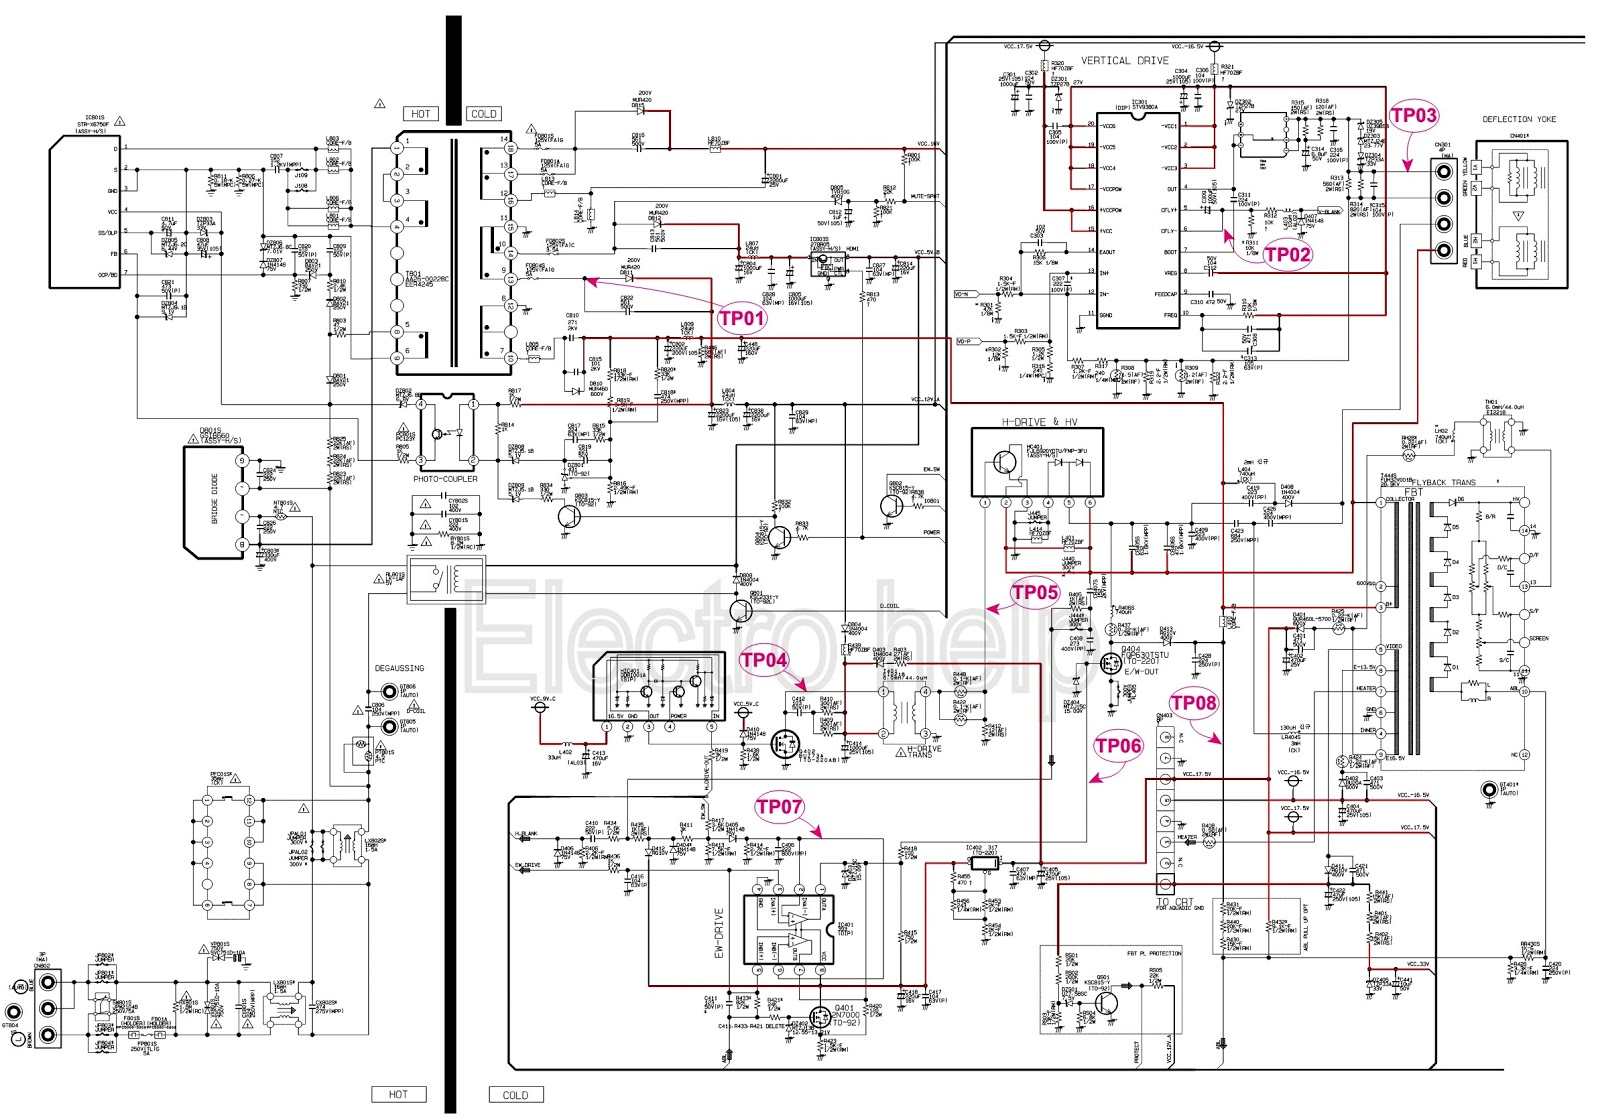 ctv smps circuit diagram str x6750f as power switching schematic rh schematicscom blogspot com samsung i9082 schematic diagram samsung i9082 schematic diagram